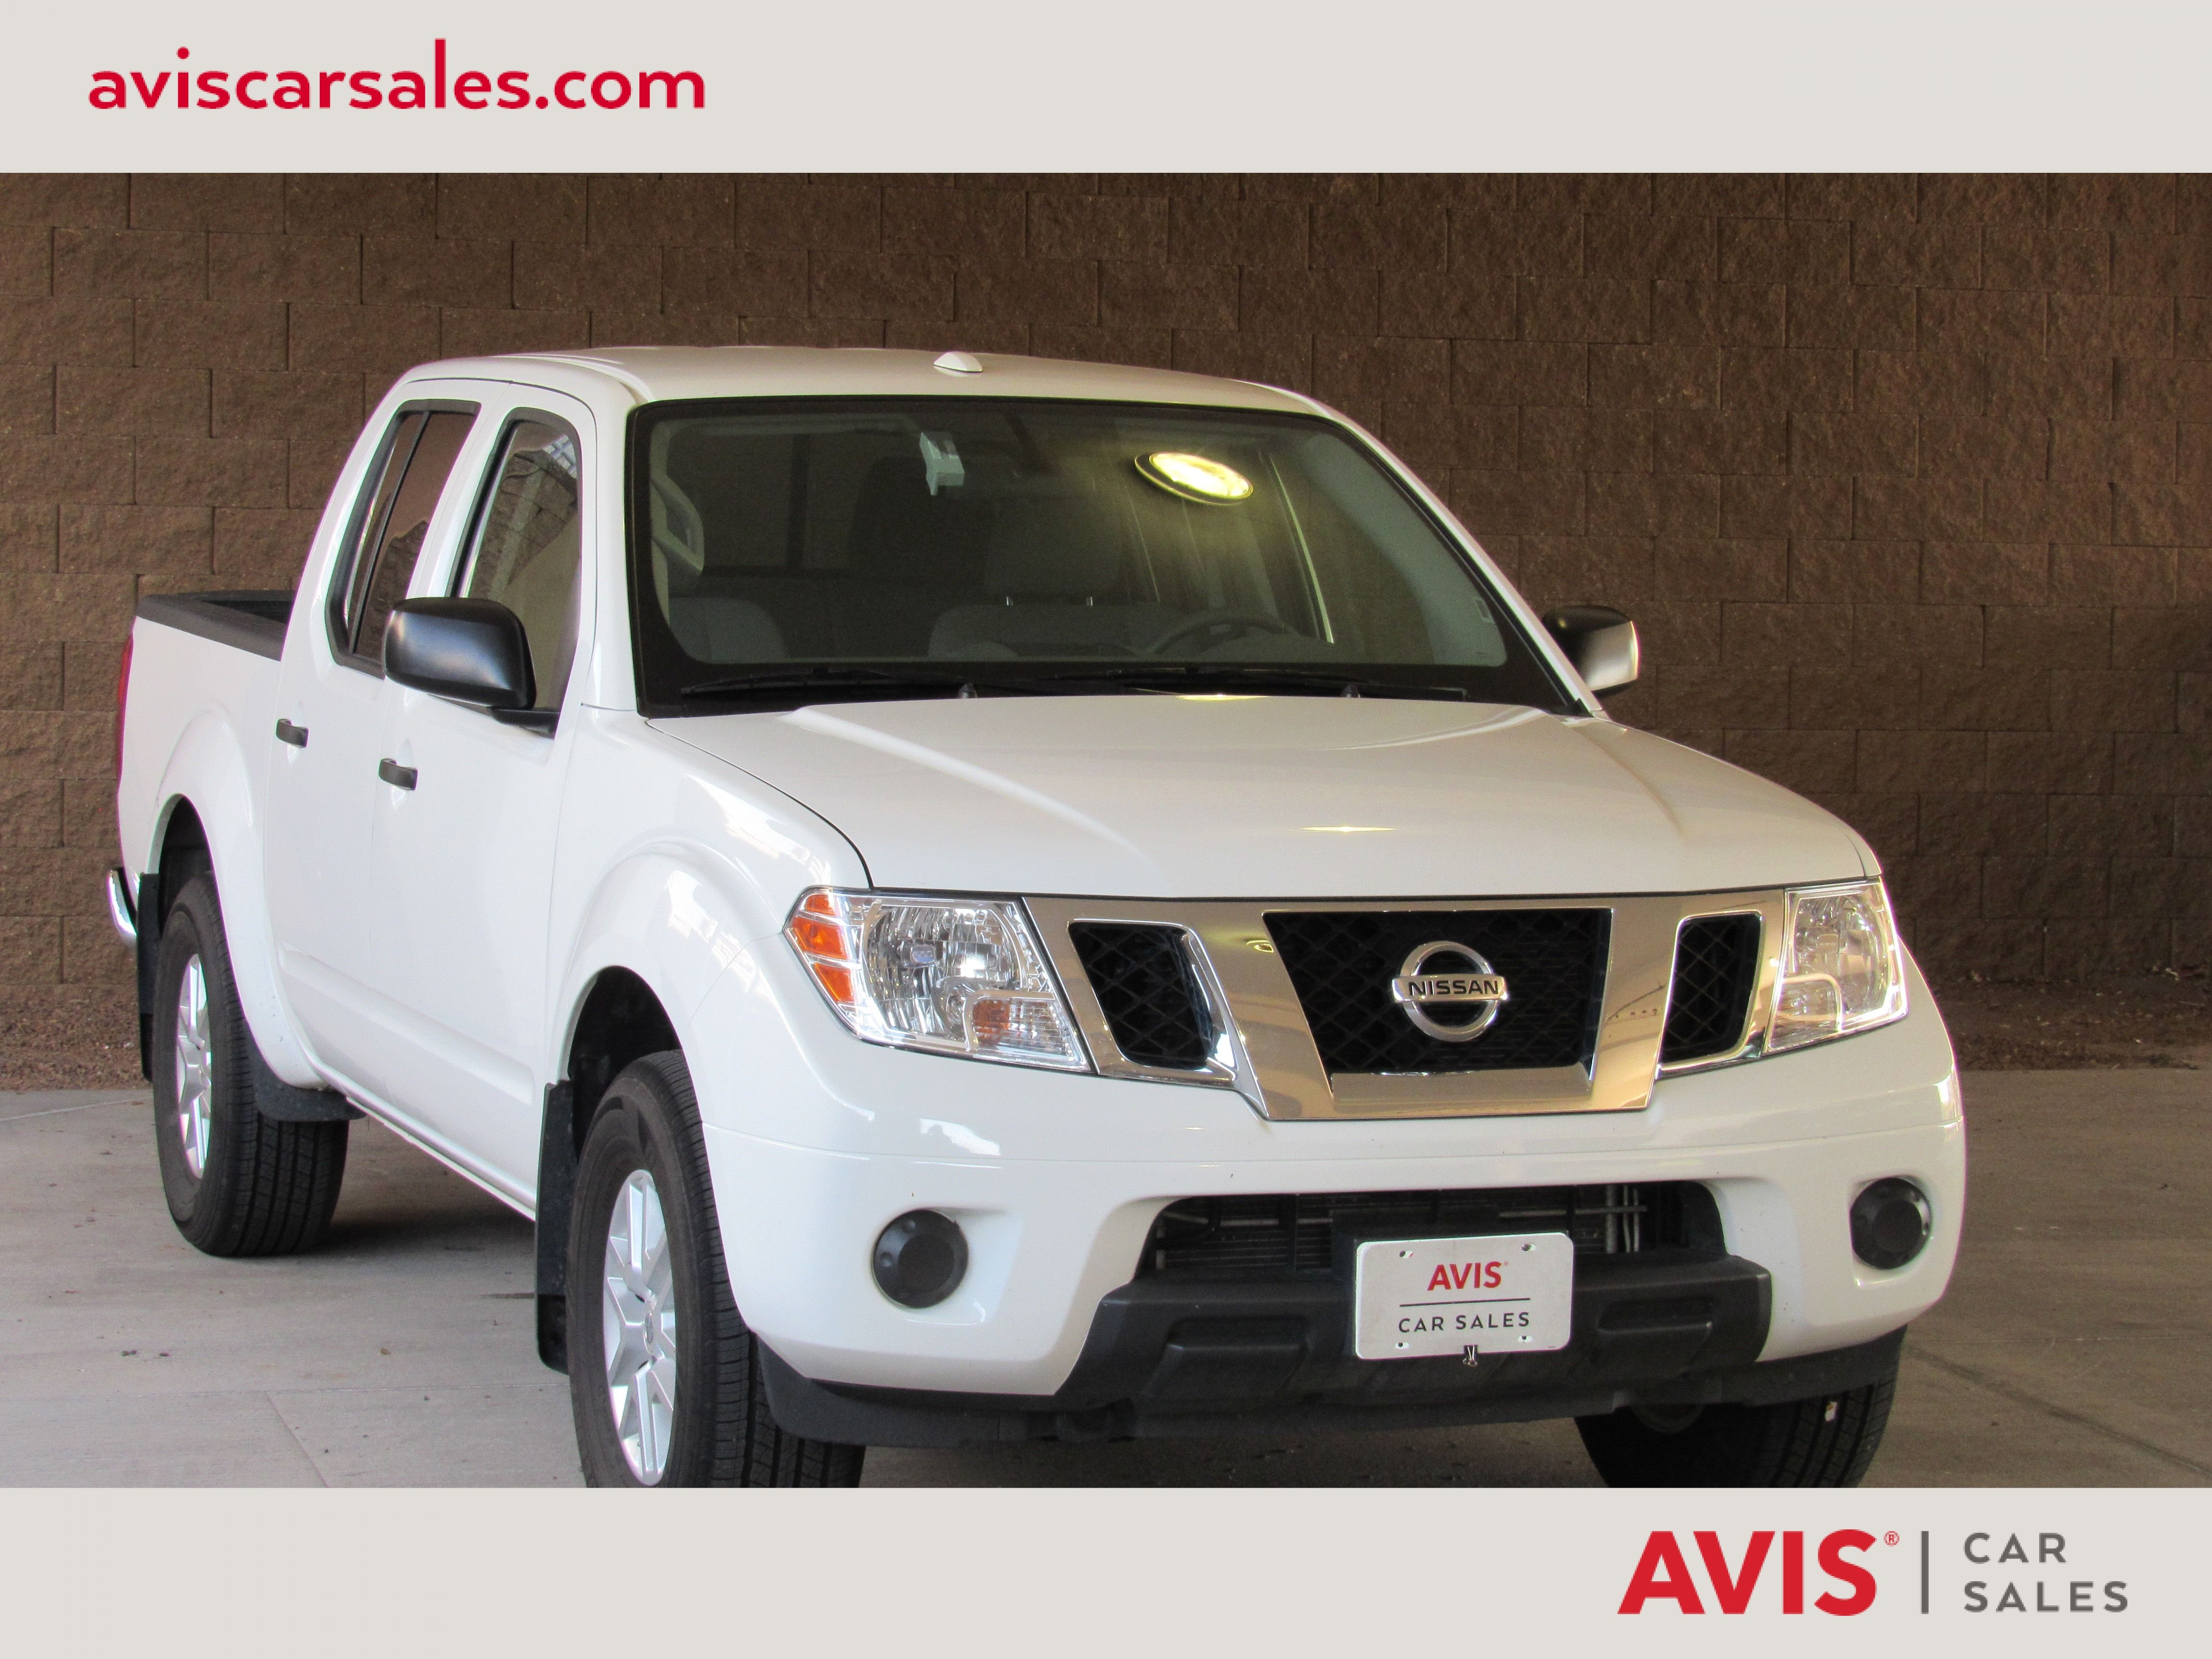 Used Cars For Sale Near Me Nissan Awesome 2018 Nissan Frontier Sv V6 Crew Cab 4wd